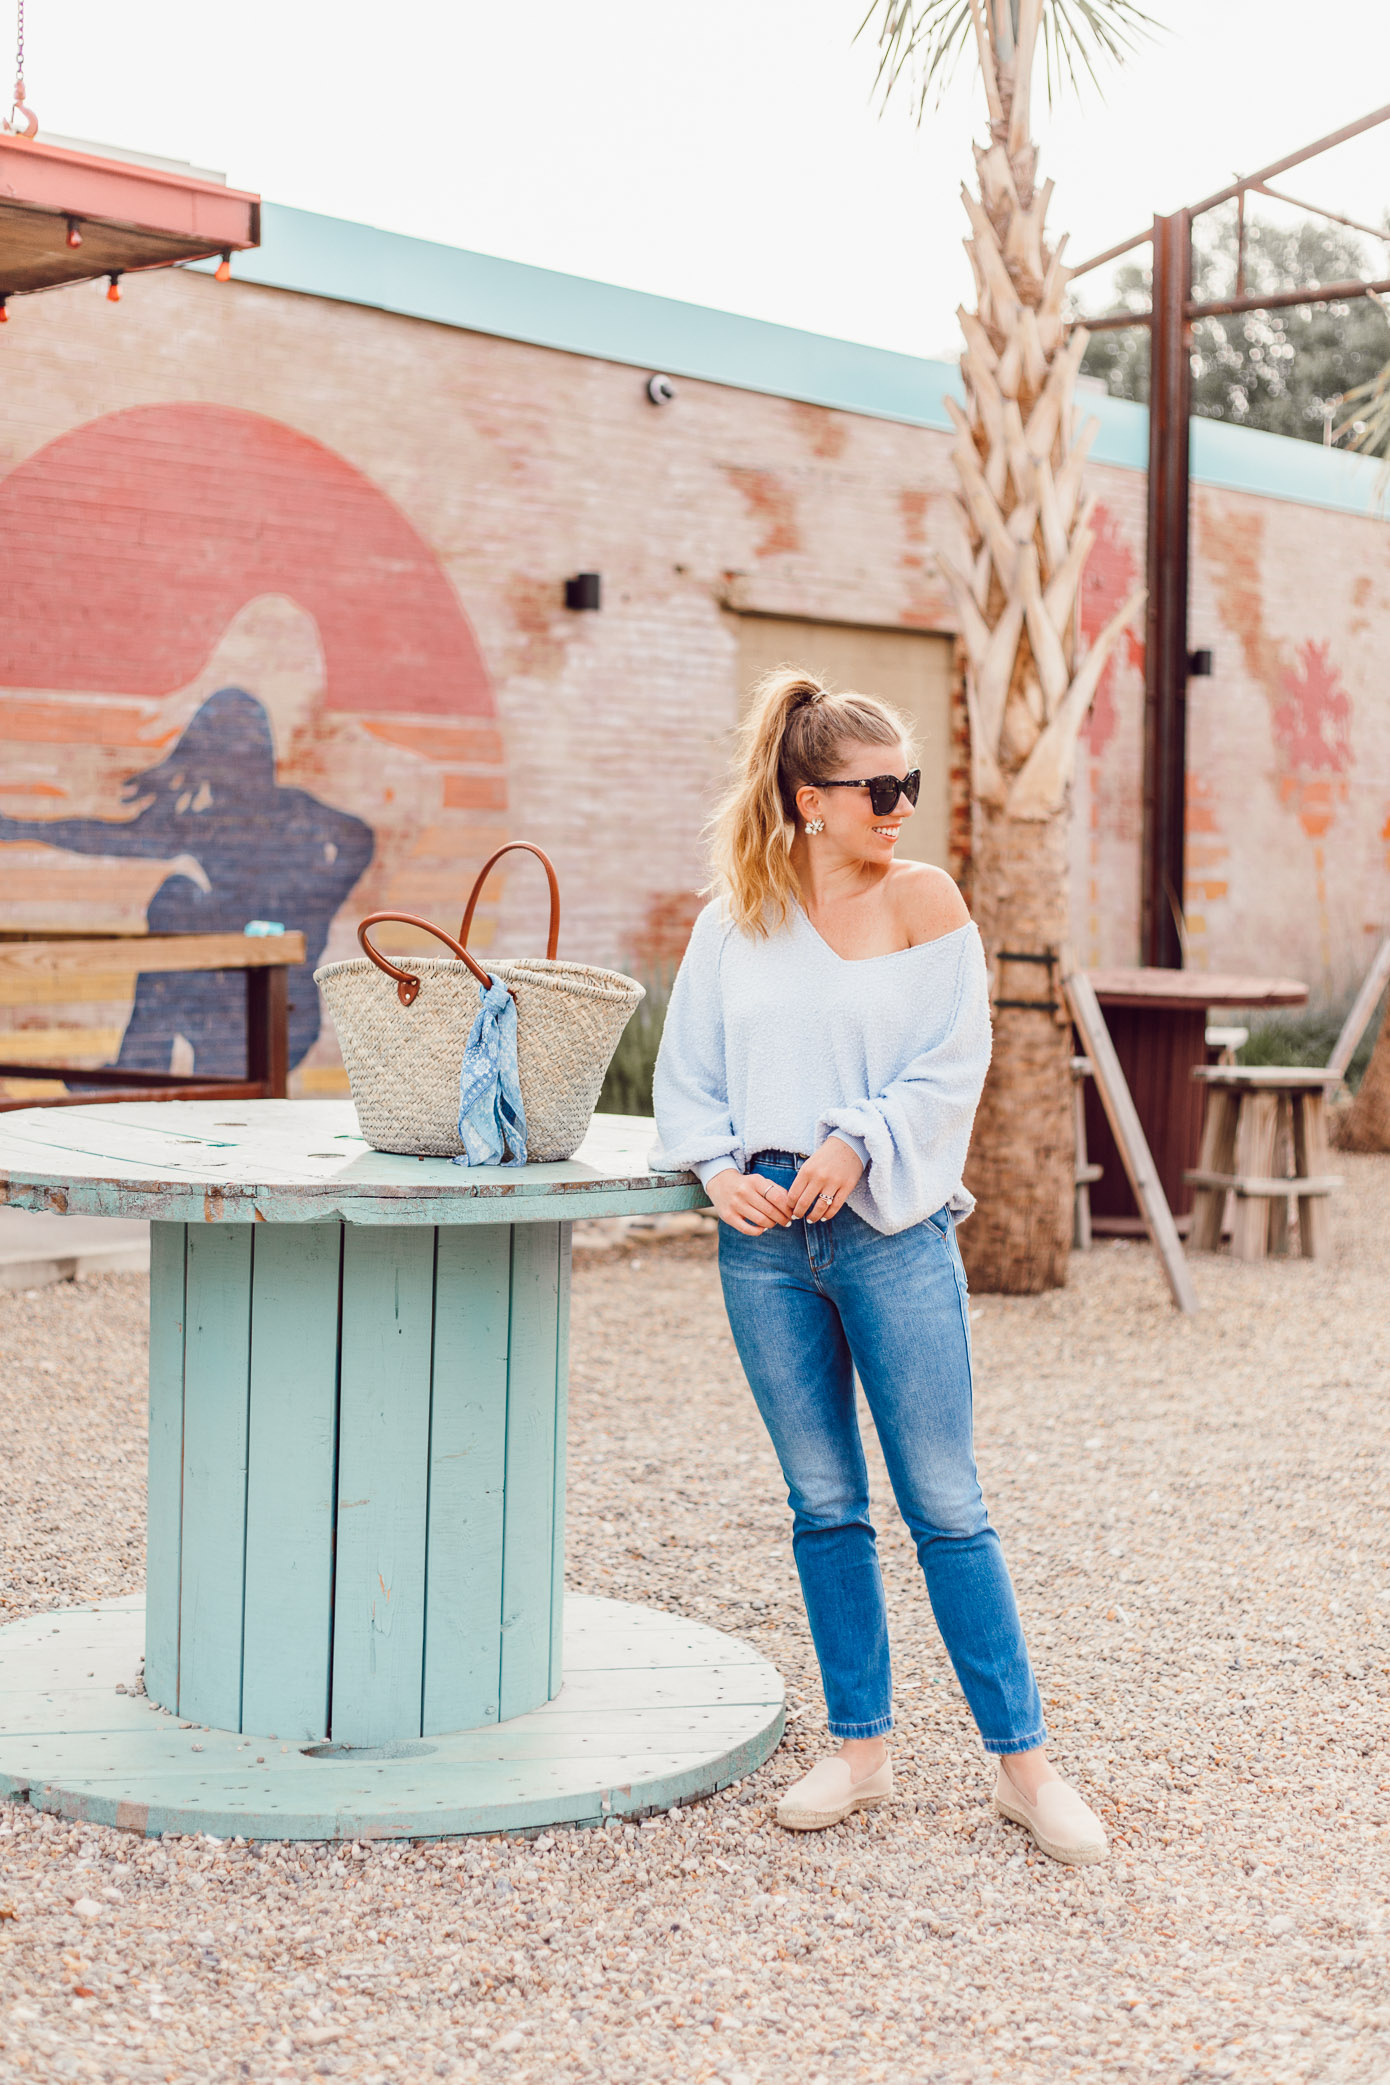 Summer Everyday Casual | Free People Found My Friend Sweater, FRAME Le Slender Straight Leg Jeans styled on Louella Reese